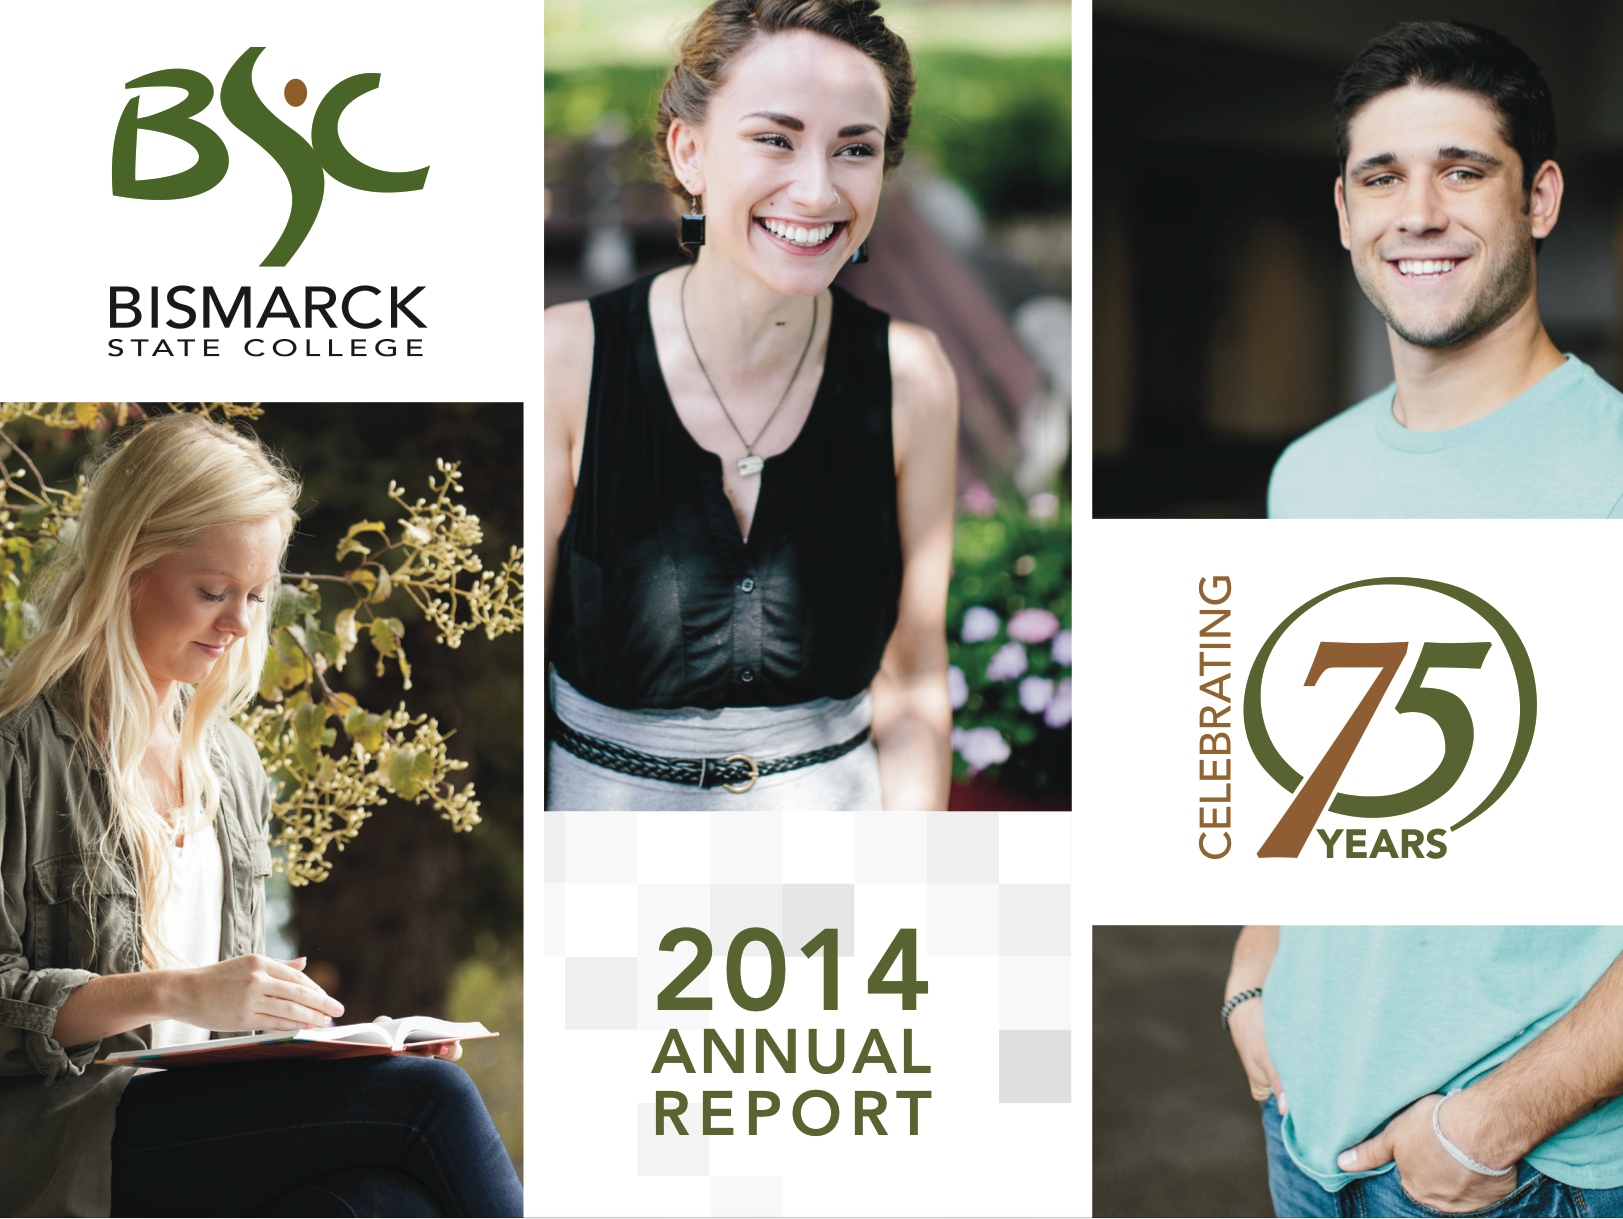 AnnualReport2014.png